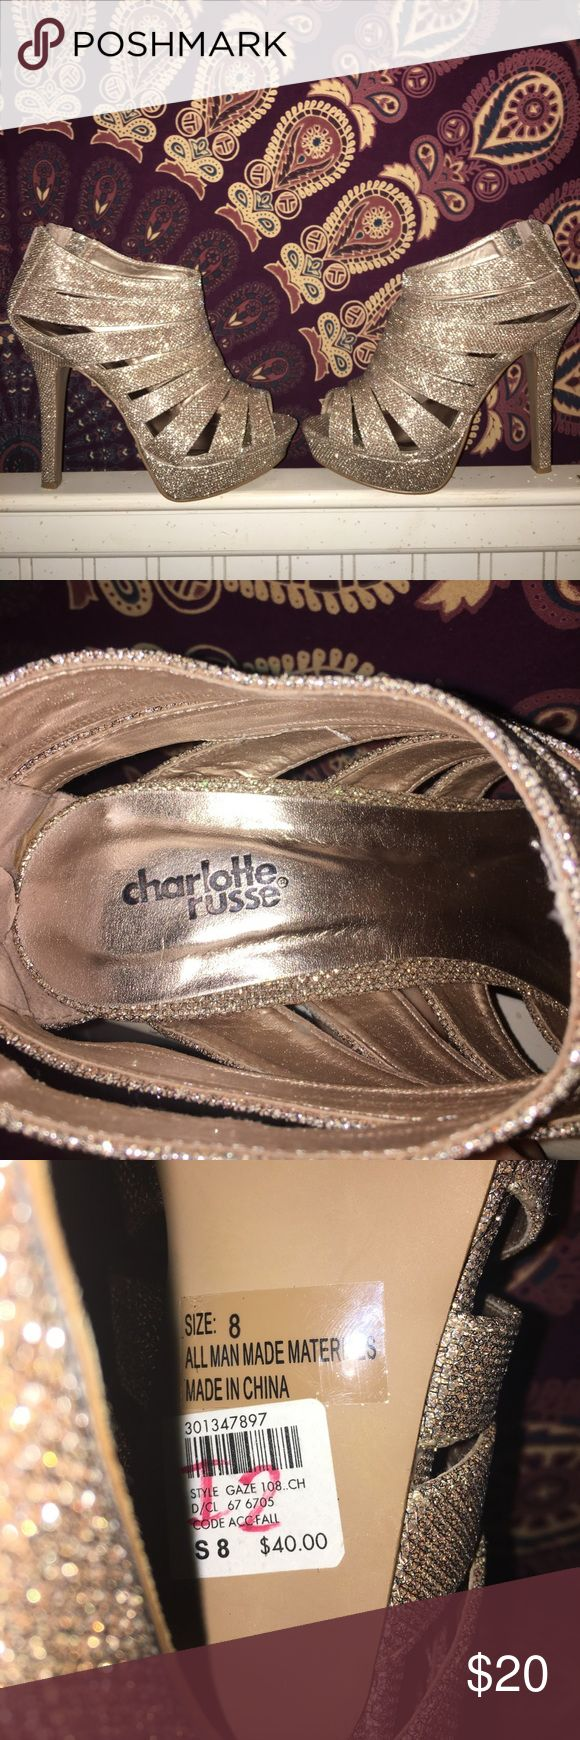 Gold Heels Charlotte Russe gold heels. Perfect for prom, homecoming, or going out. Very comfortable. Can fit a size 8 - 8.5 ORIGINALLY $40 price is negotiable Charlotte Russe Shoes Heels